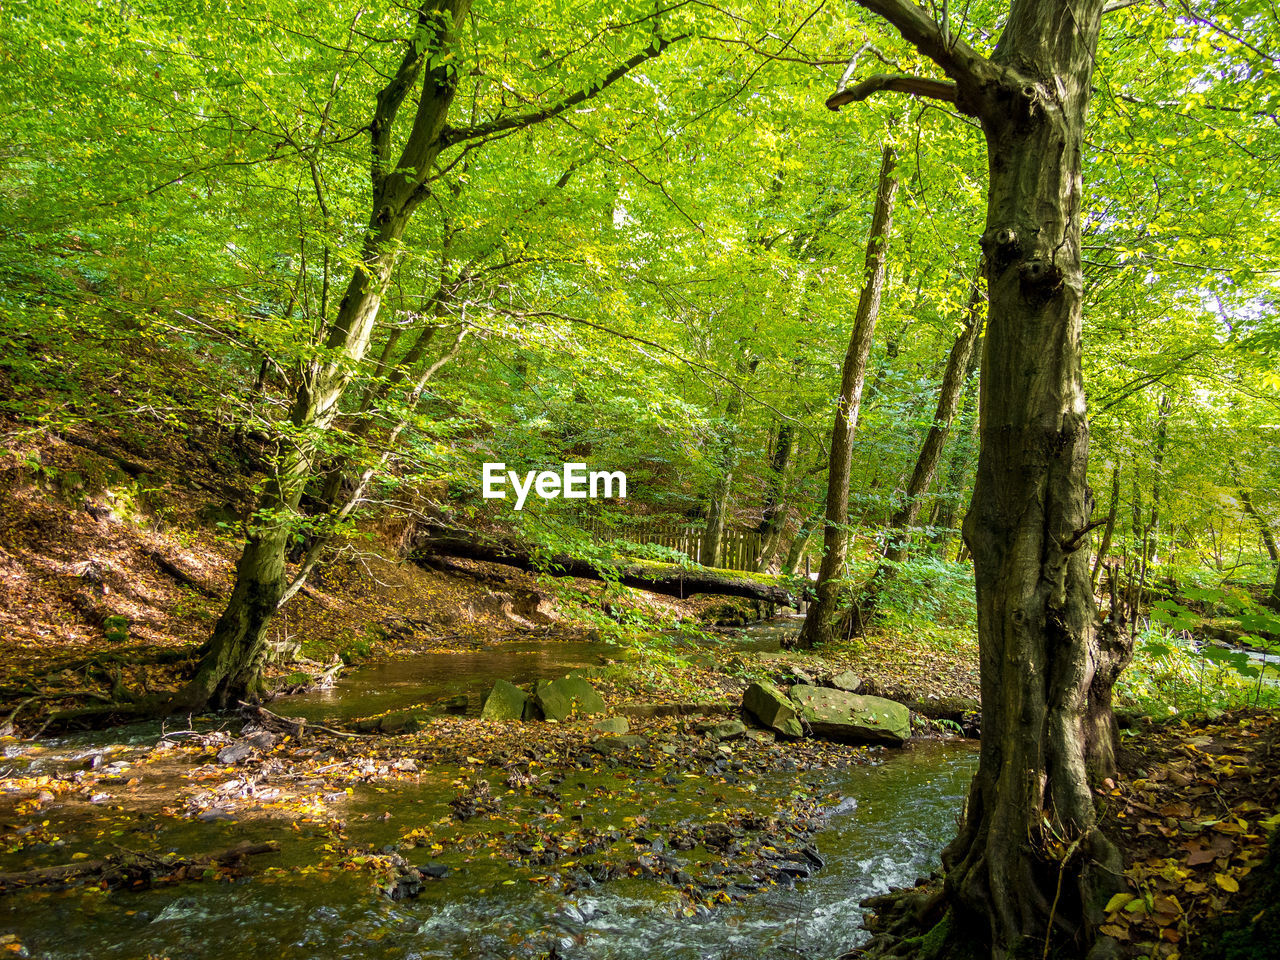 tree, forest, land, plant, water, nature, tree trunk, no people, trunk, tranquility, woodland, beauty in nature, day, green color, growth, scenics - nature, outdoors, tranquil scene, non-urban scene, stream - flowing water, swamp, flowing